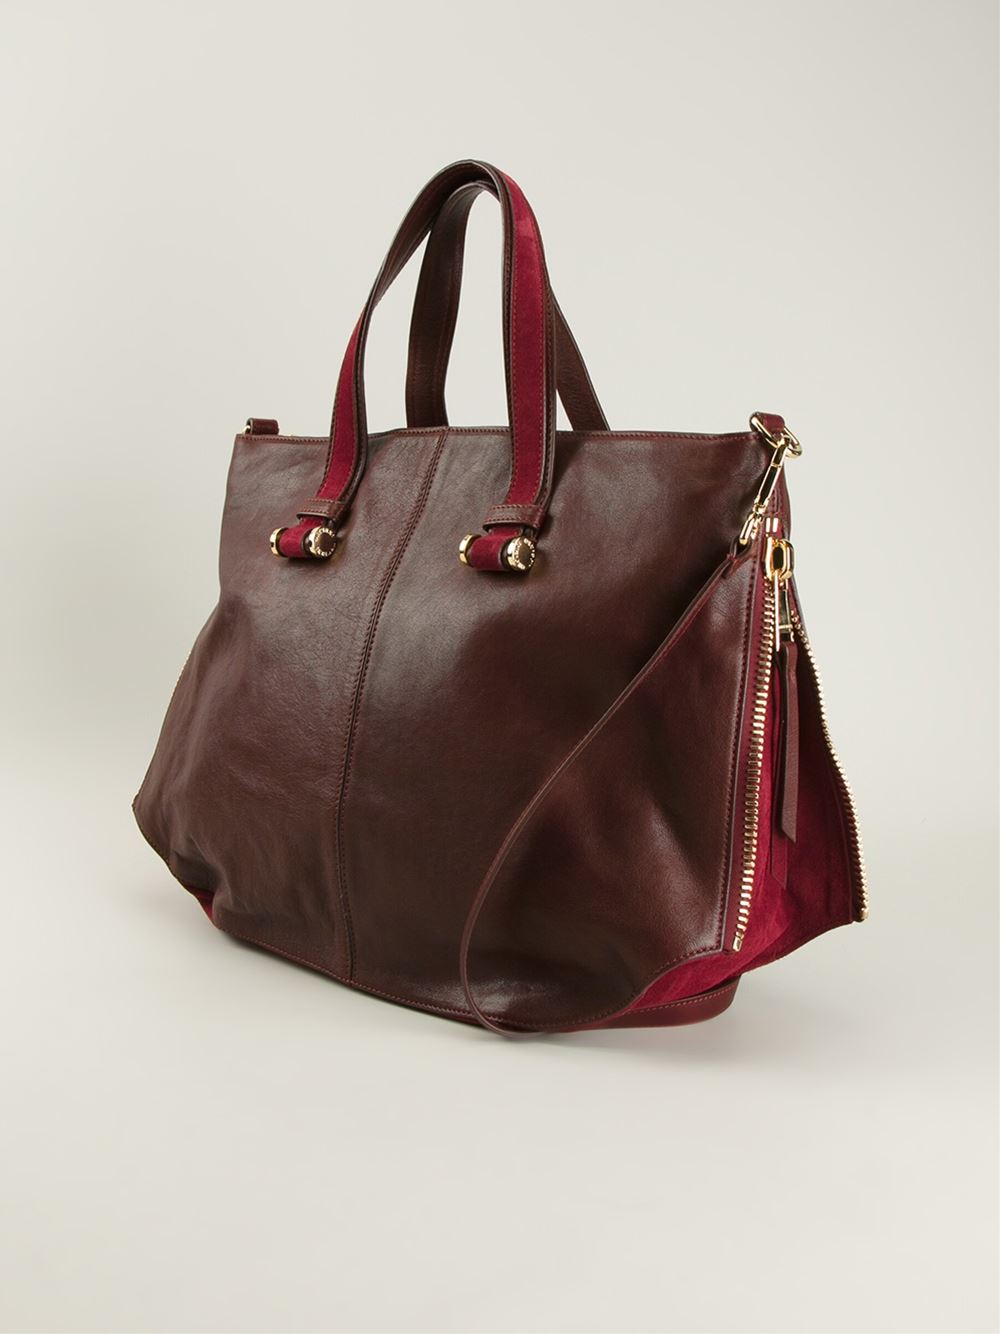 Claudio Orciani Zipped Sides Tote Bag in Red